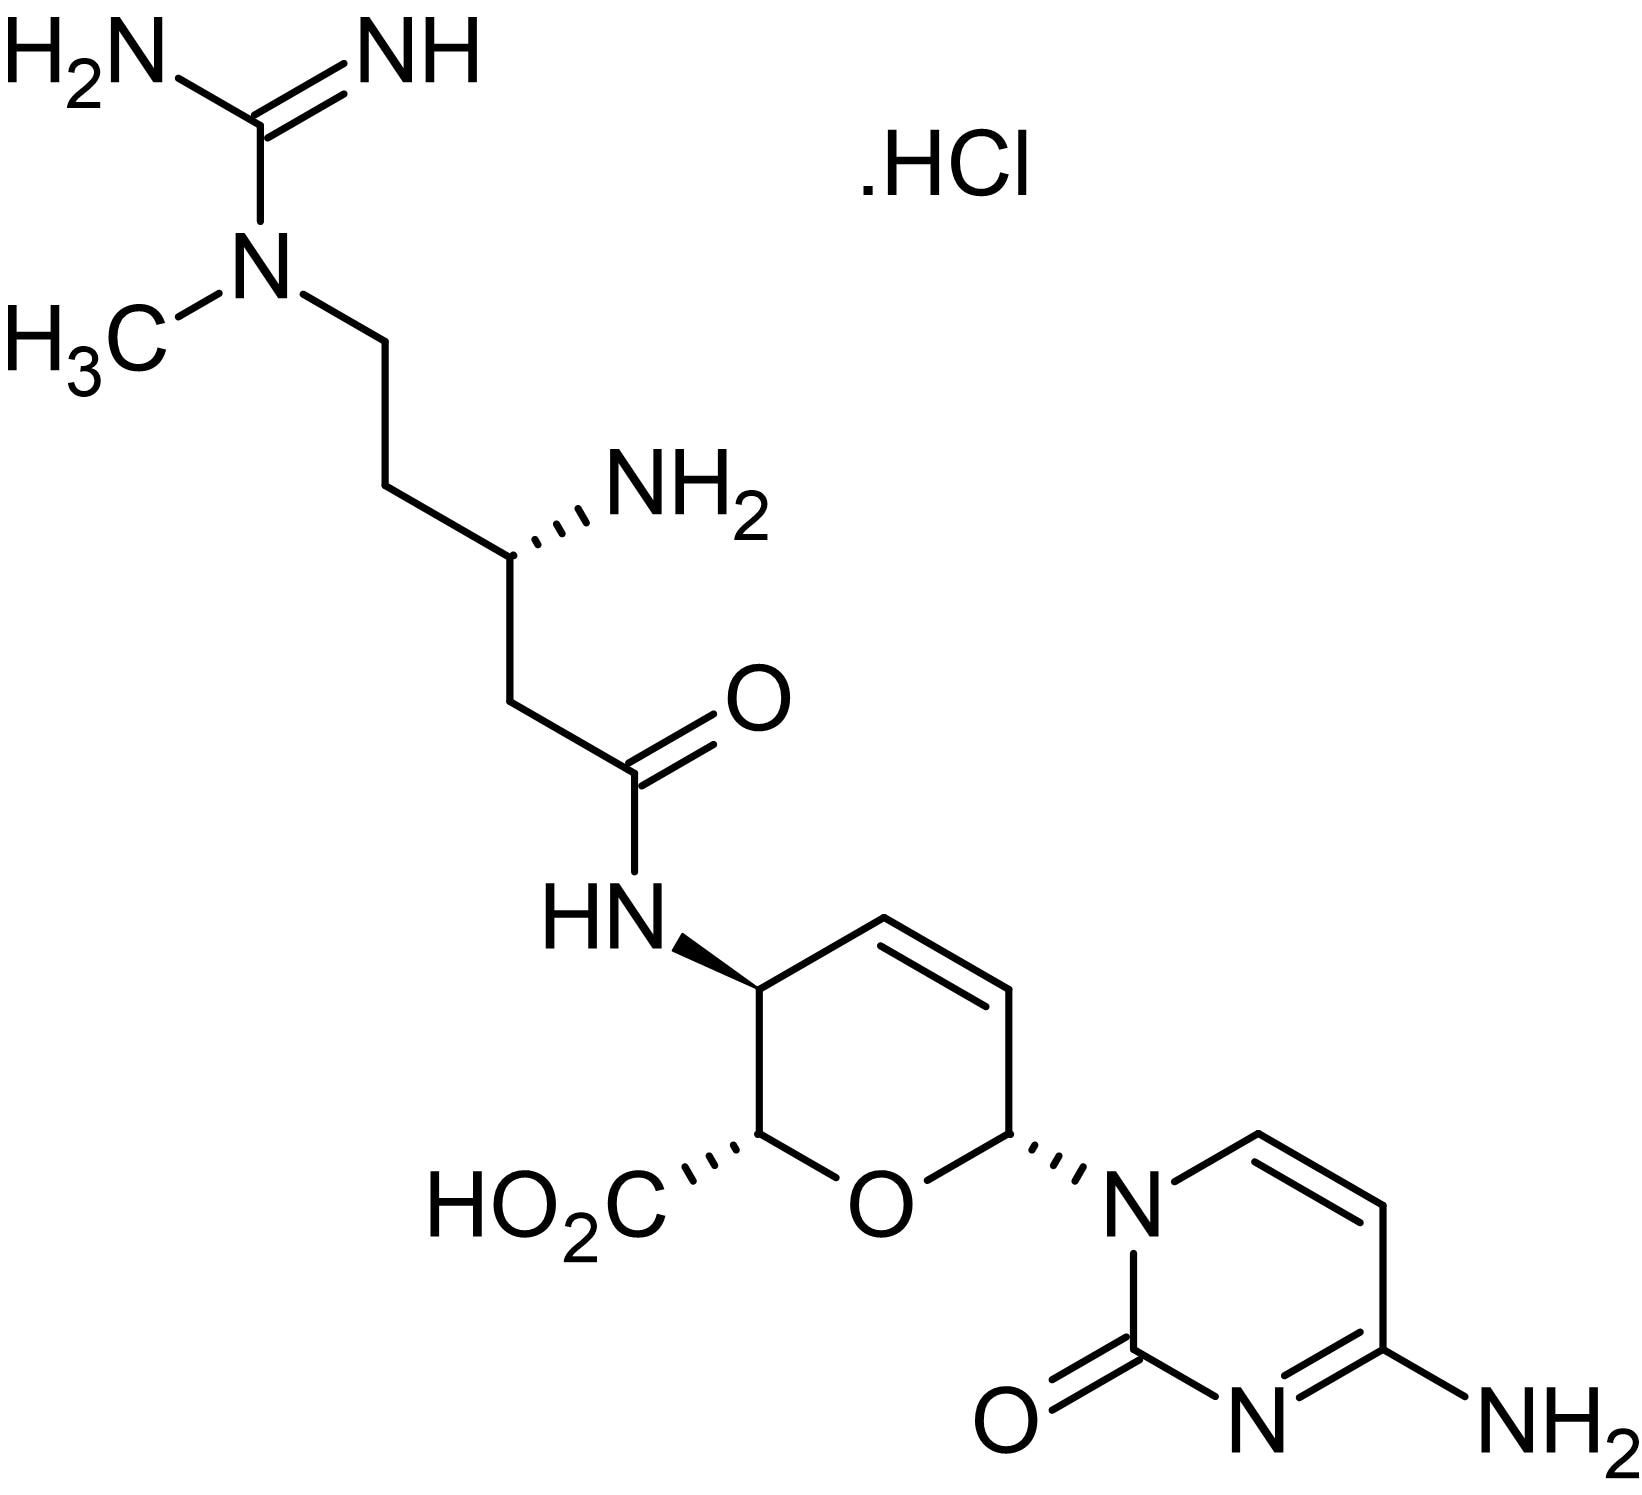 Chemical Structure - Blasticidin S hydrochloride (aqueous solution in HEPES, pH 7.5, sterile-filtered), antibiotic agent (ab146609)